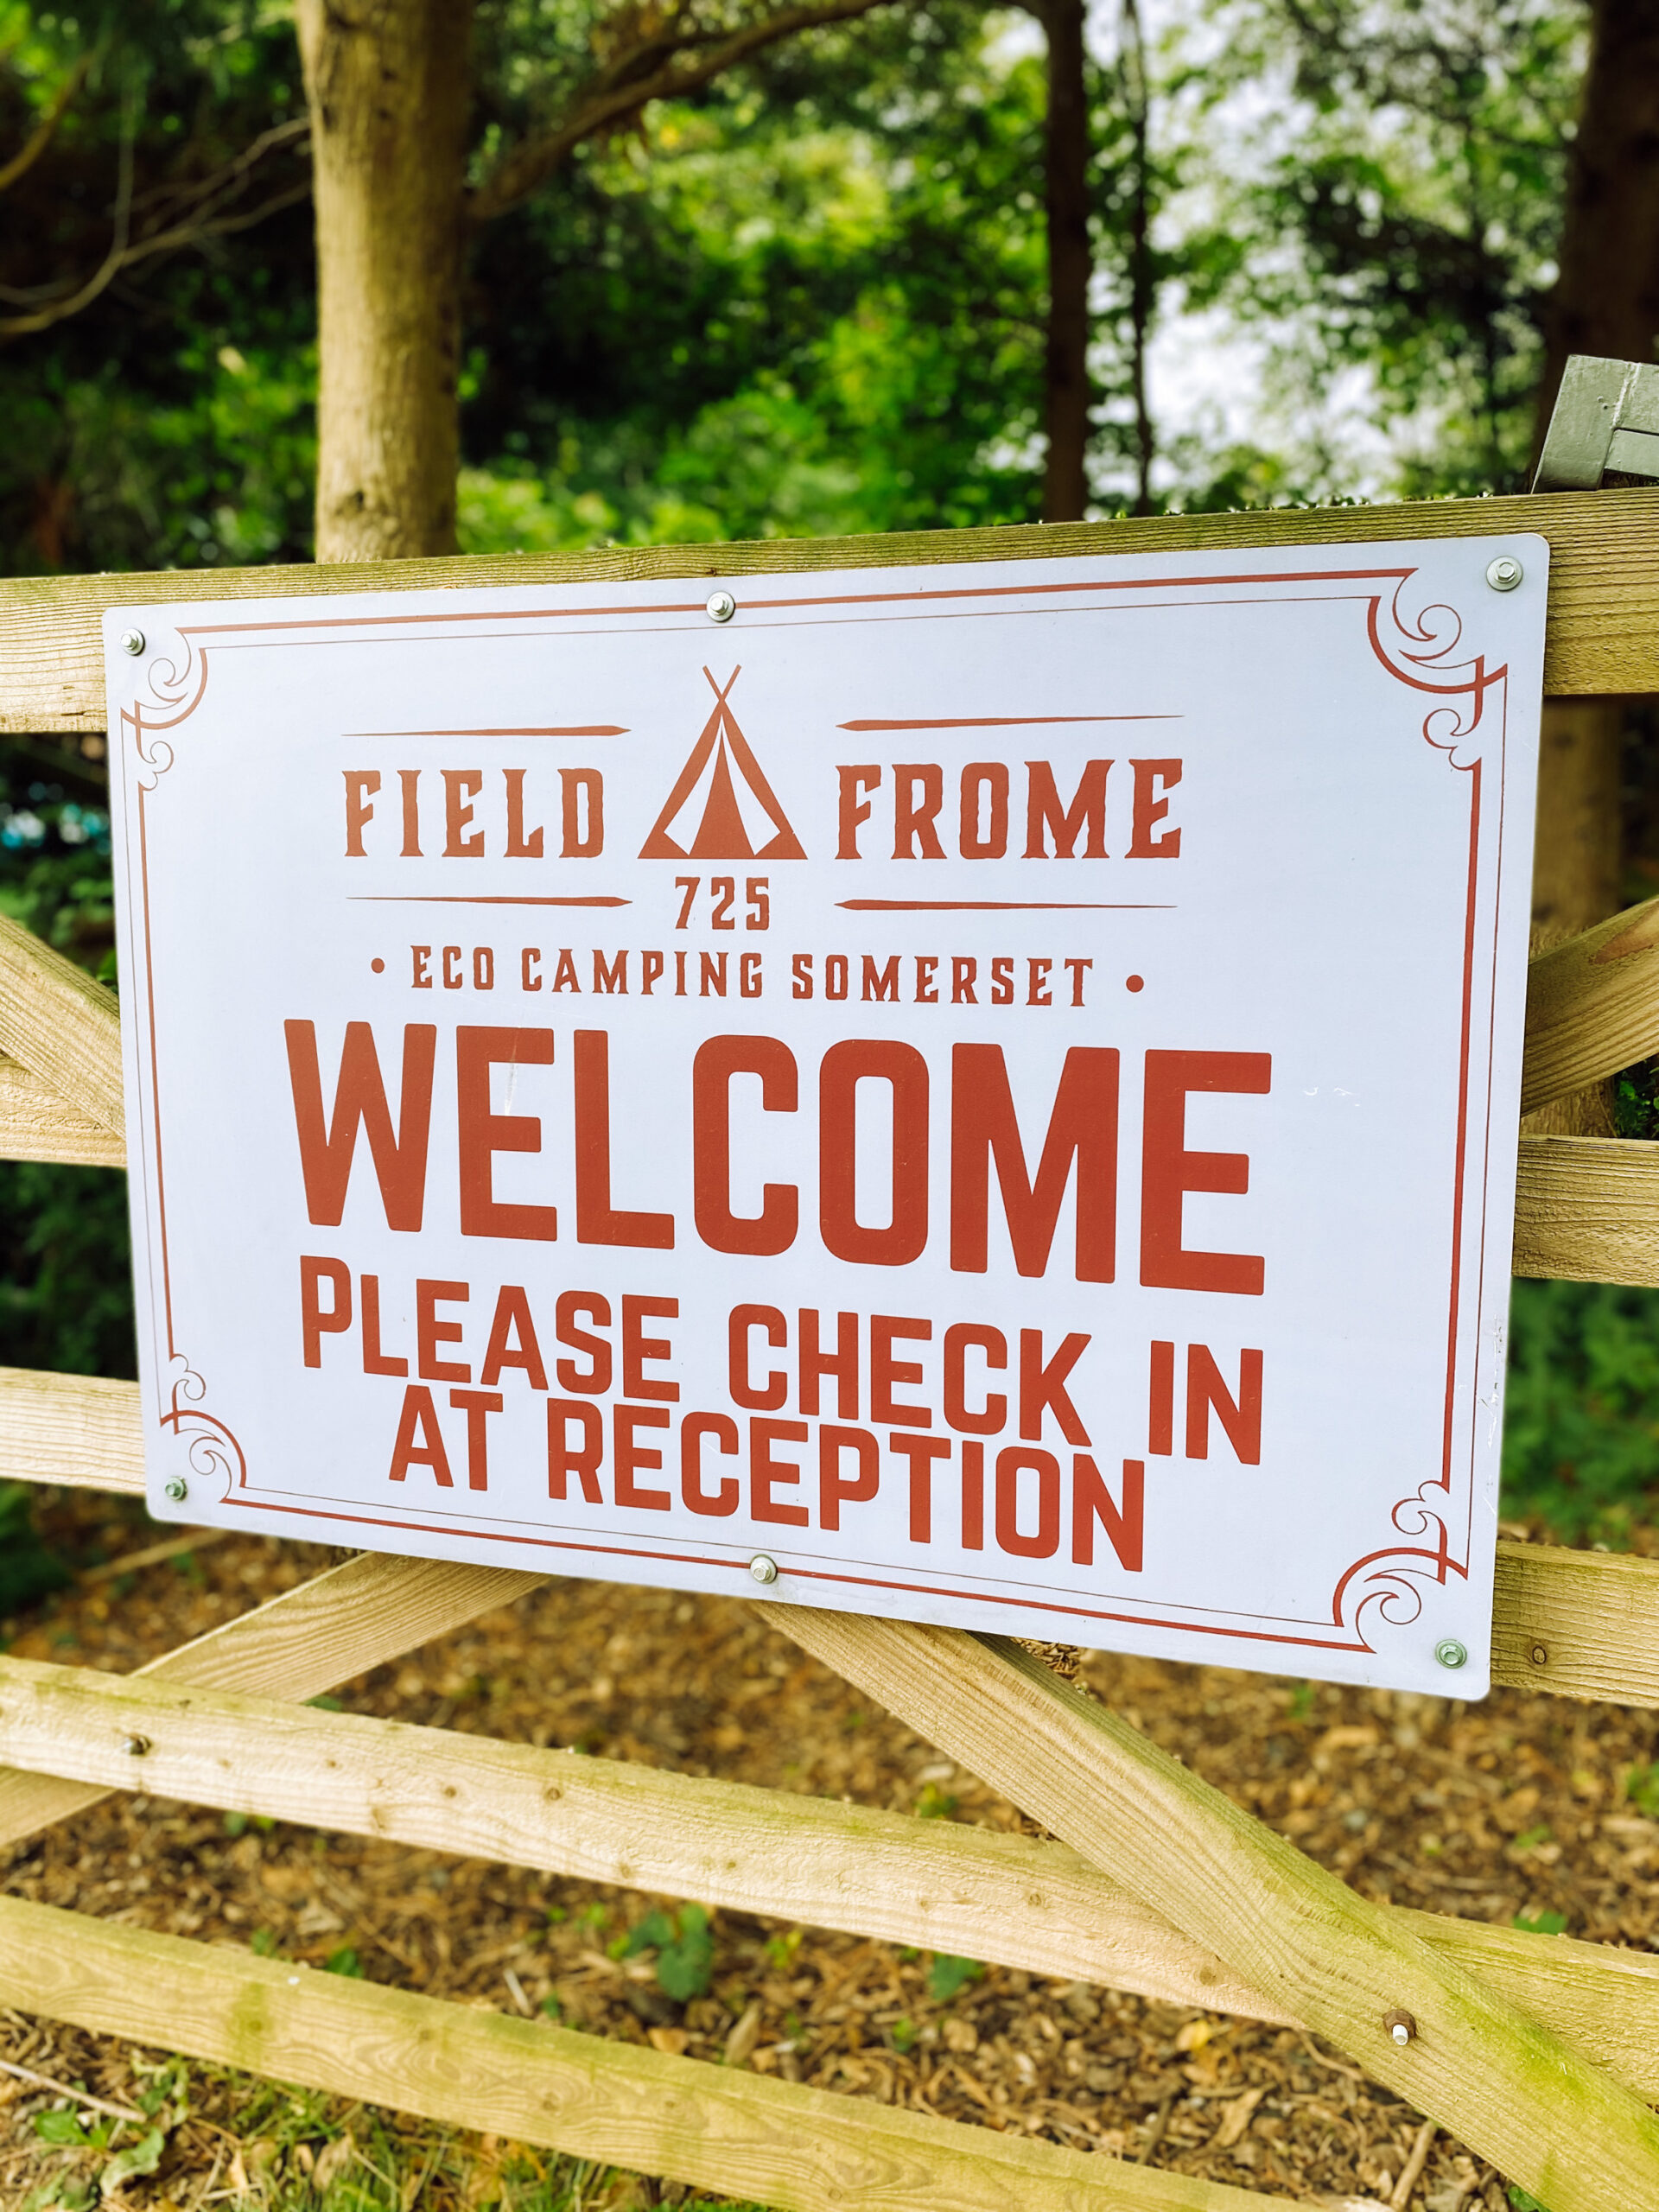 Reception Sign at Field 725